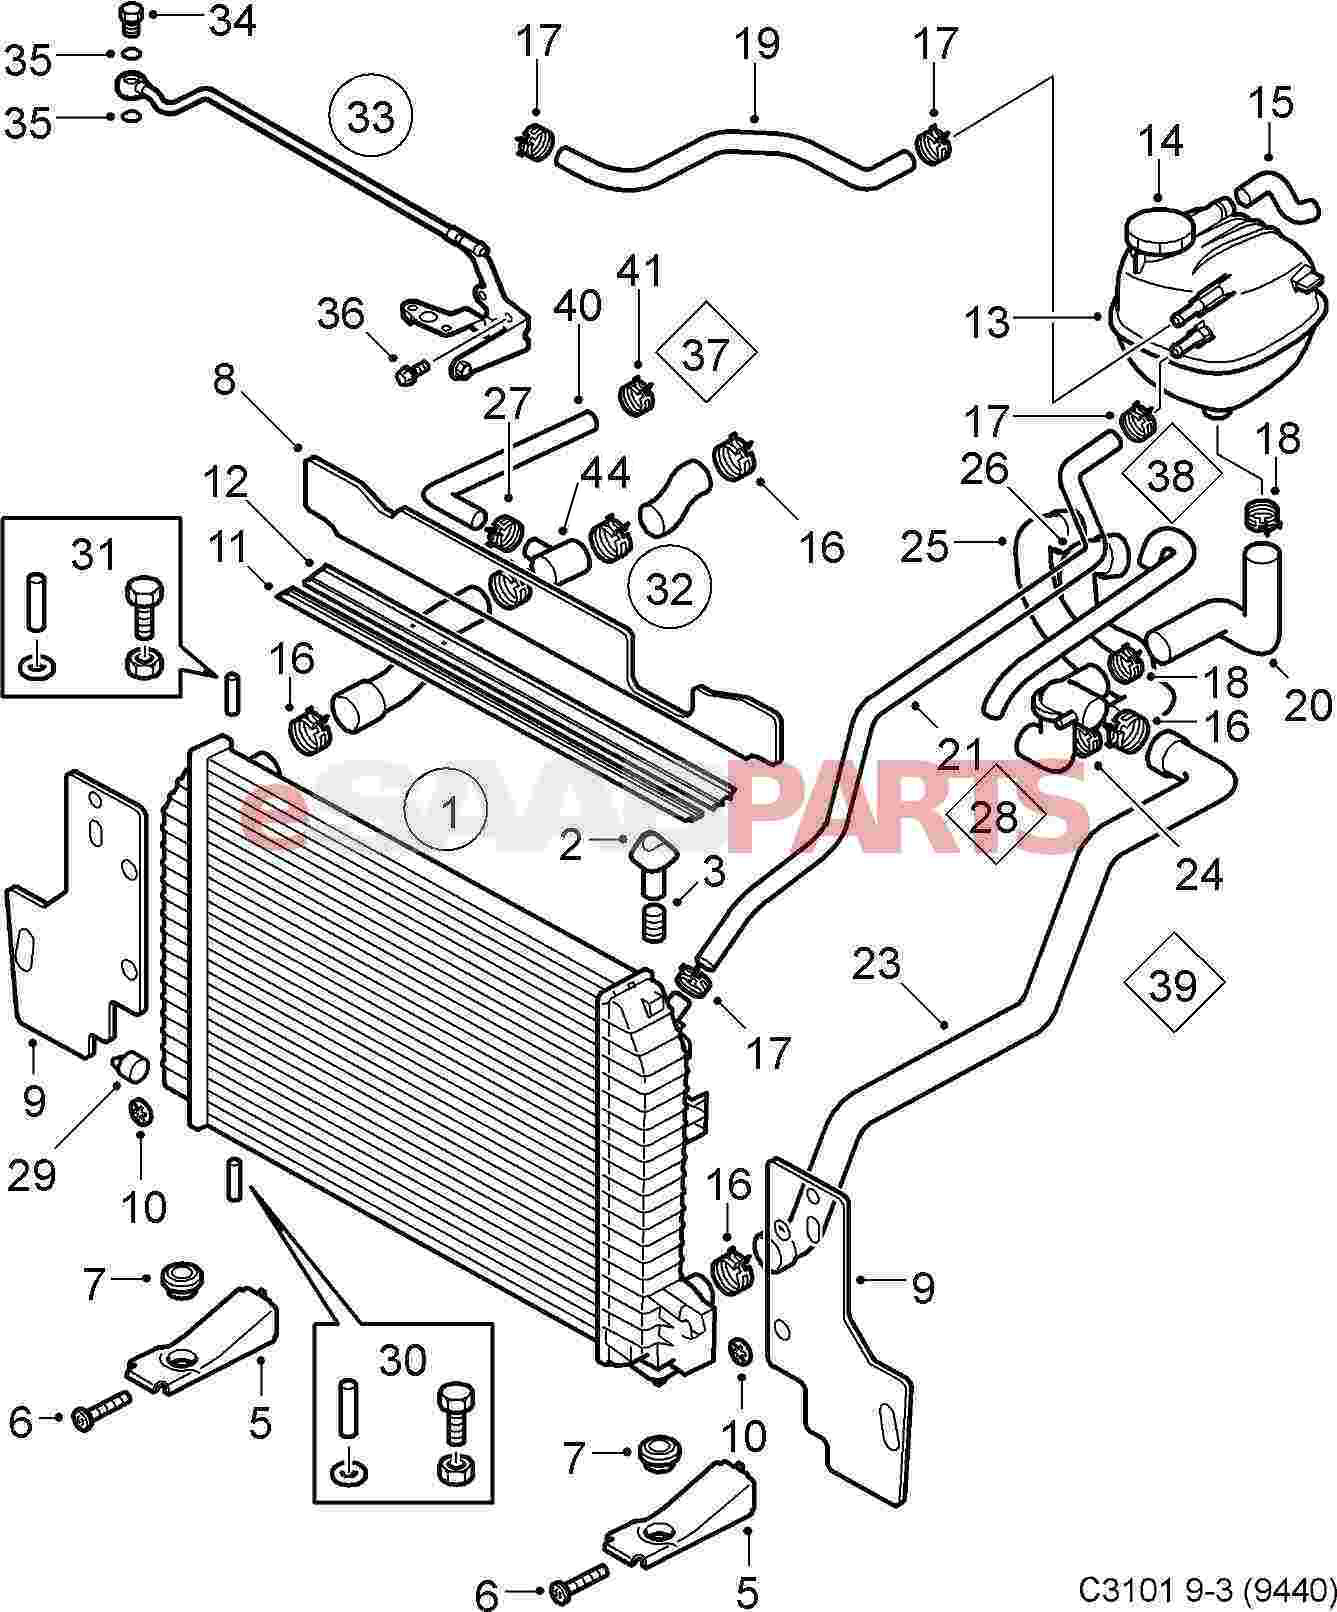 12789871 saab radiator bracket genuine saab parts from esaabparts rh esaabparts car radiator diagram